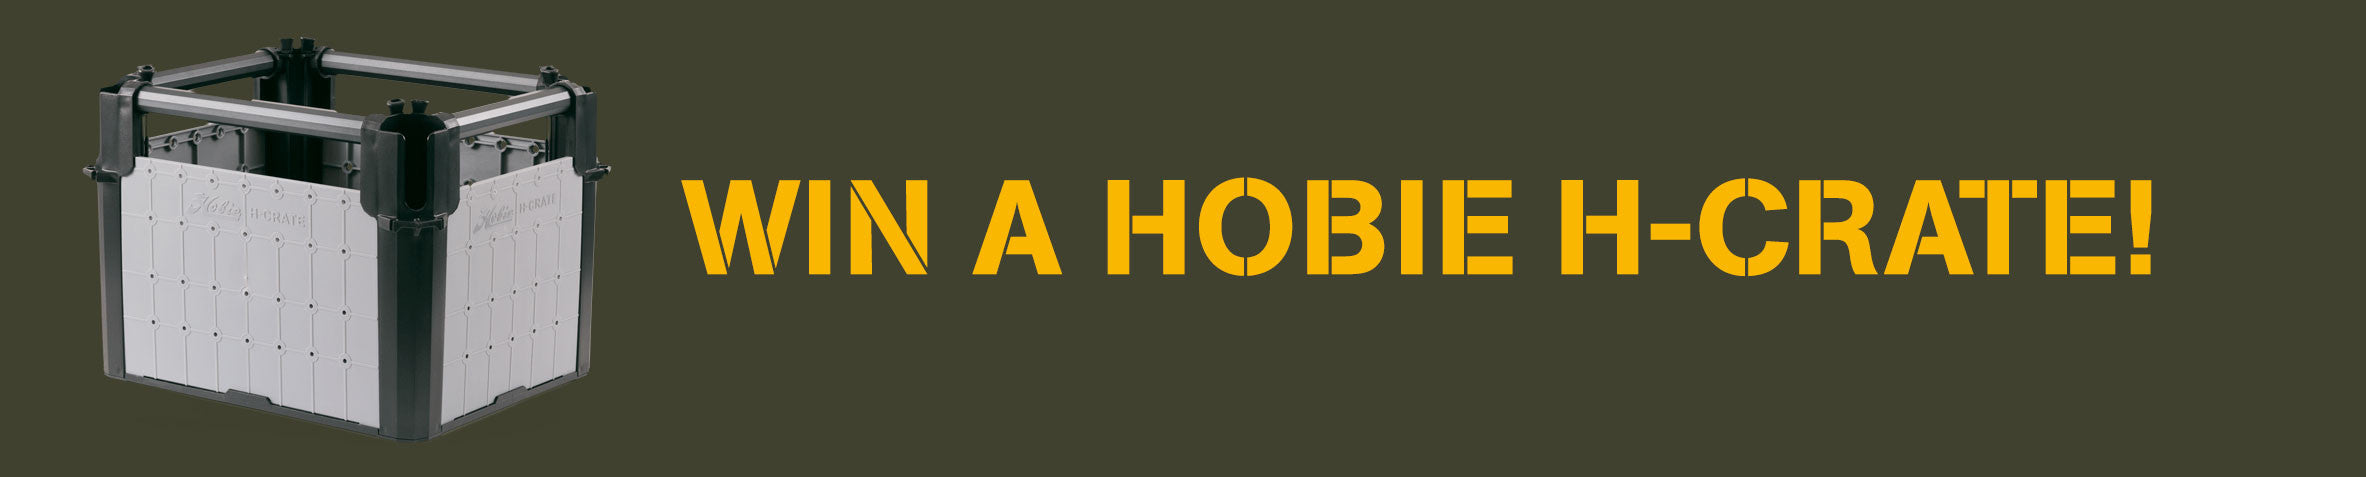 Win A Hobie H-Crate